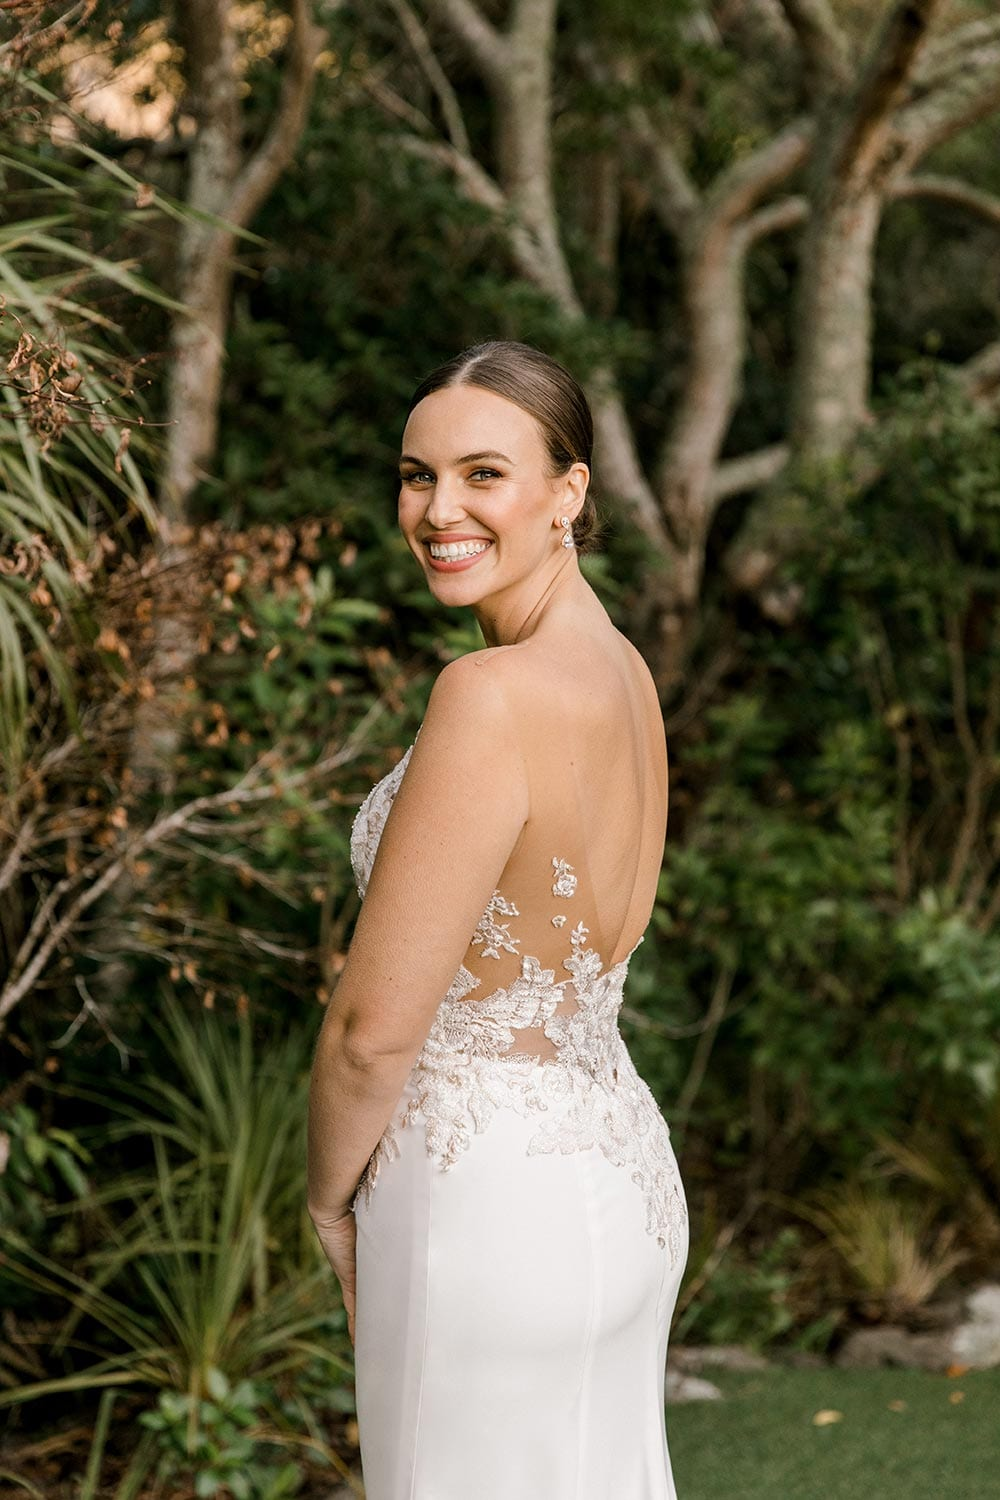 Samantha Wedding Dress from Vinka Design. This beautiful wedding dress has a nude sheer illusion strapless neckline made from fine Italian tulle. Low sheer back & structured bodice, & soft crepe train. Model looking over shoulder showing side of gown. Photographed in Landscaped garden.